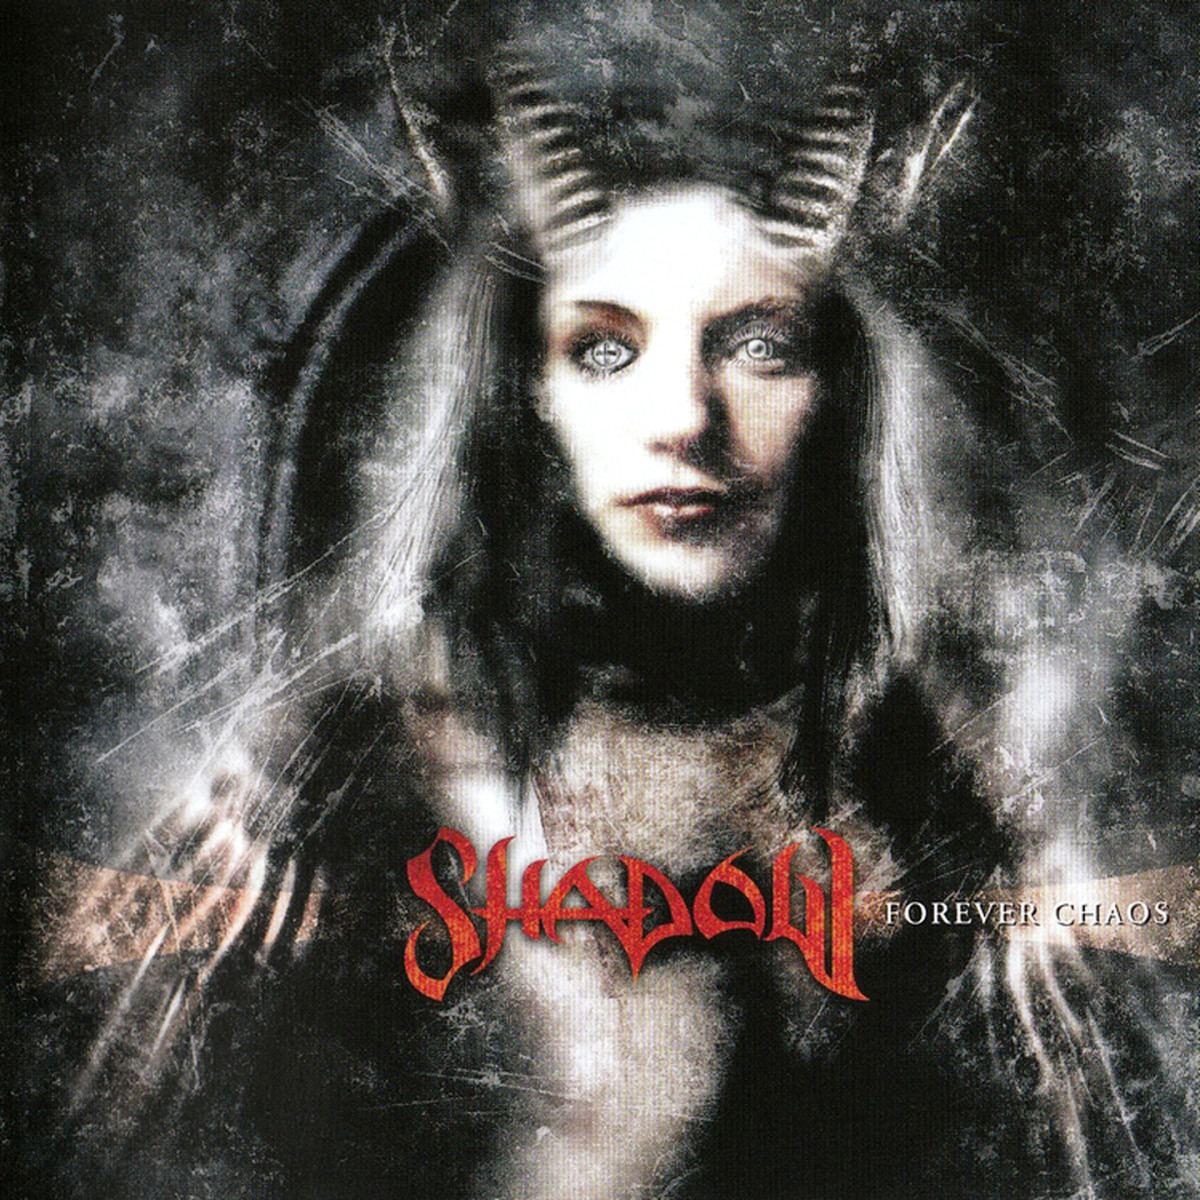 Review of the Album Forever Chaos by Japanese Melodic Death Metal Band Shadow